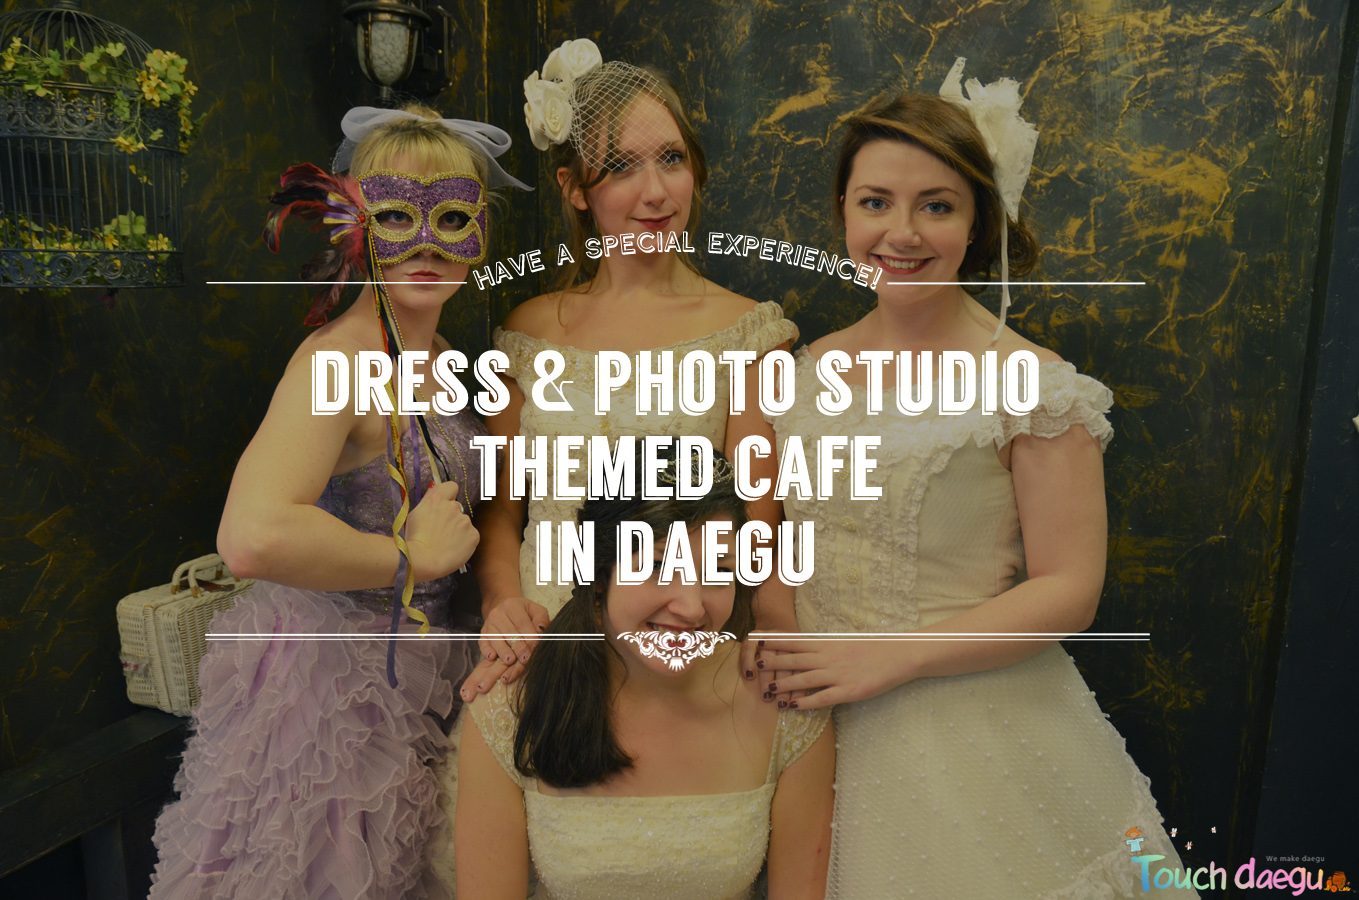 Daegu/Korea Dress & Photo Studio Themed Cafe